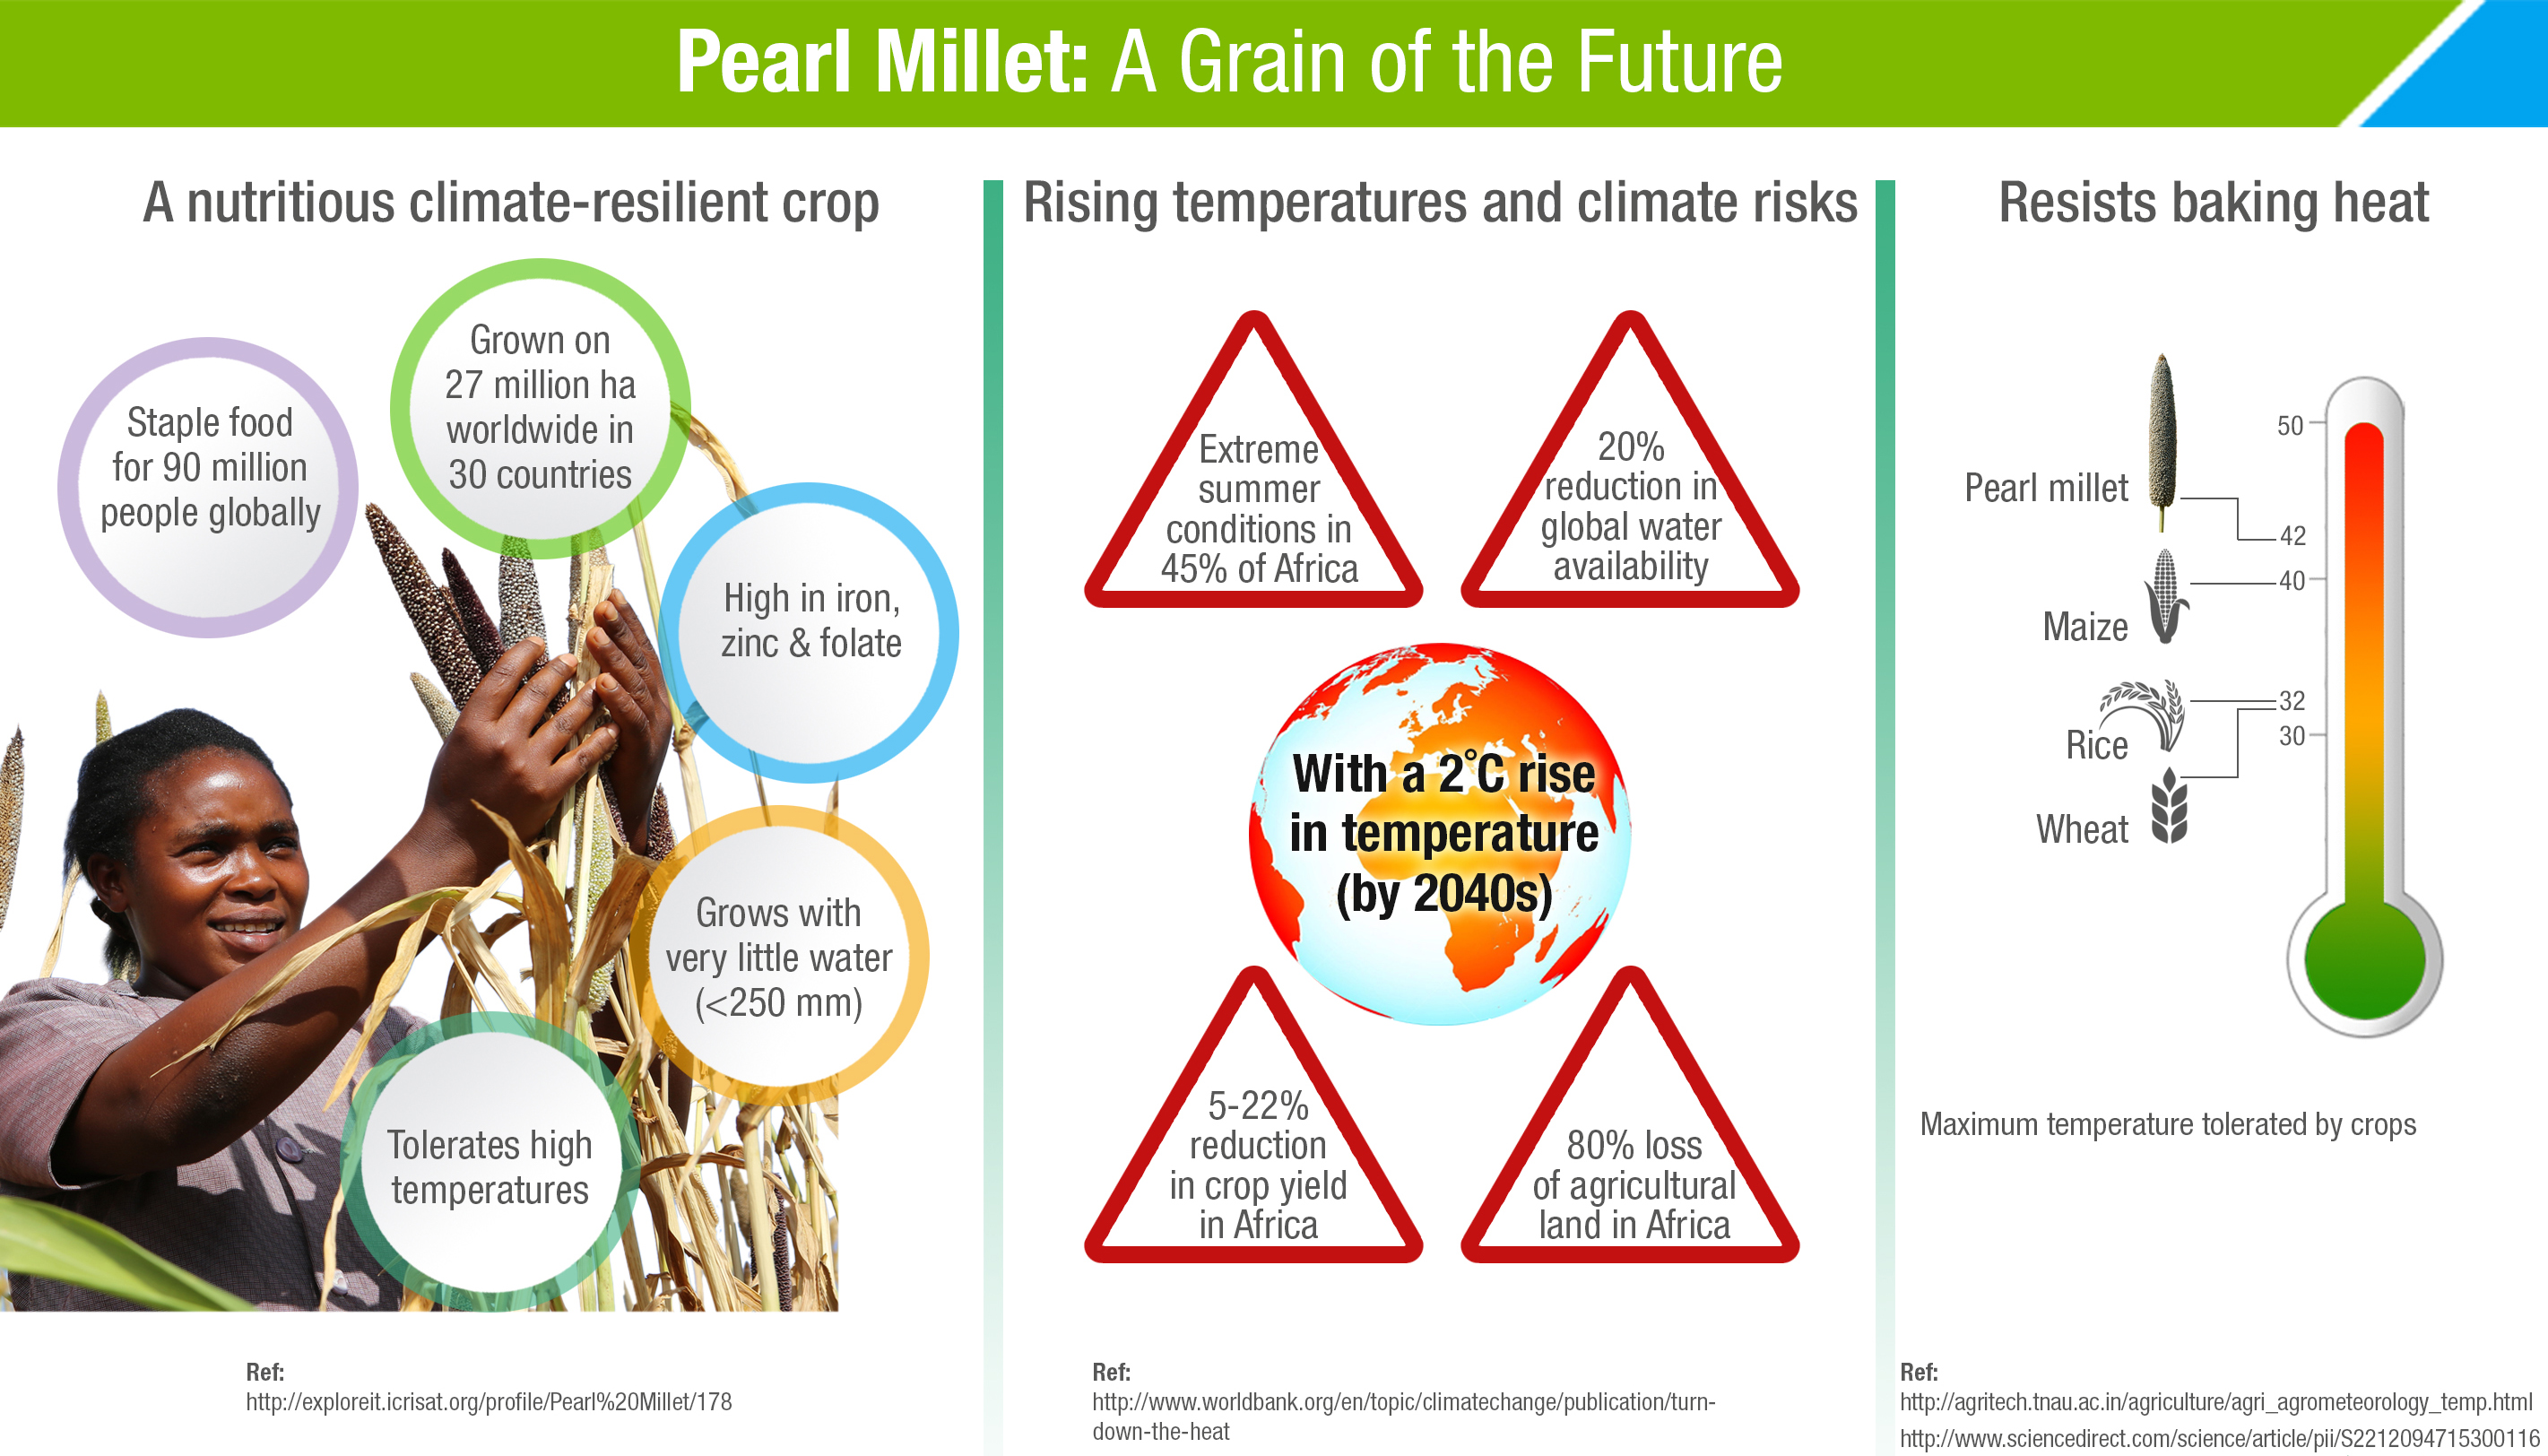 Pearl Millet: A Grain of the Future